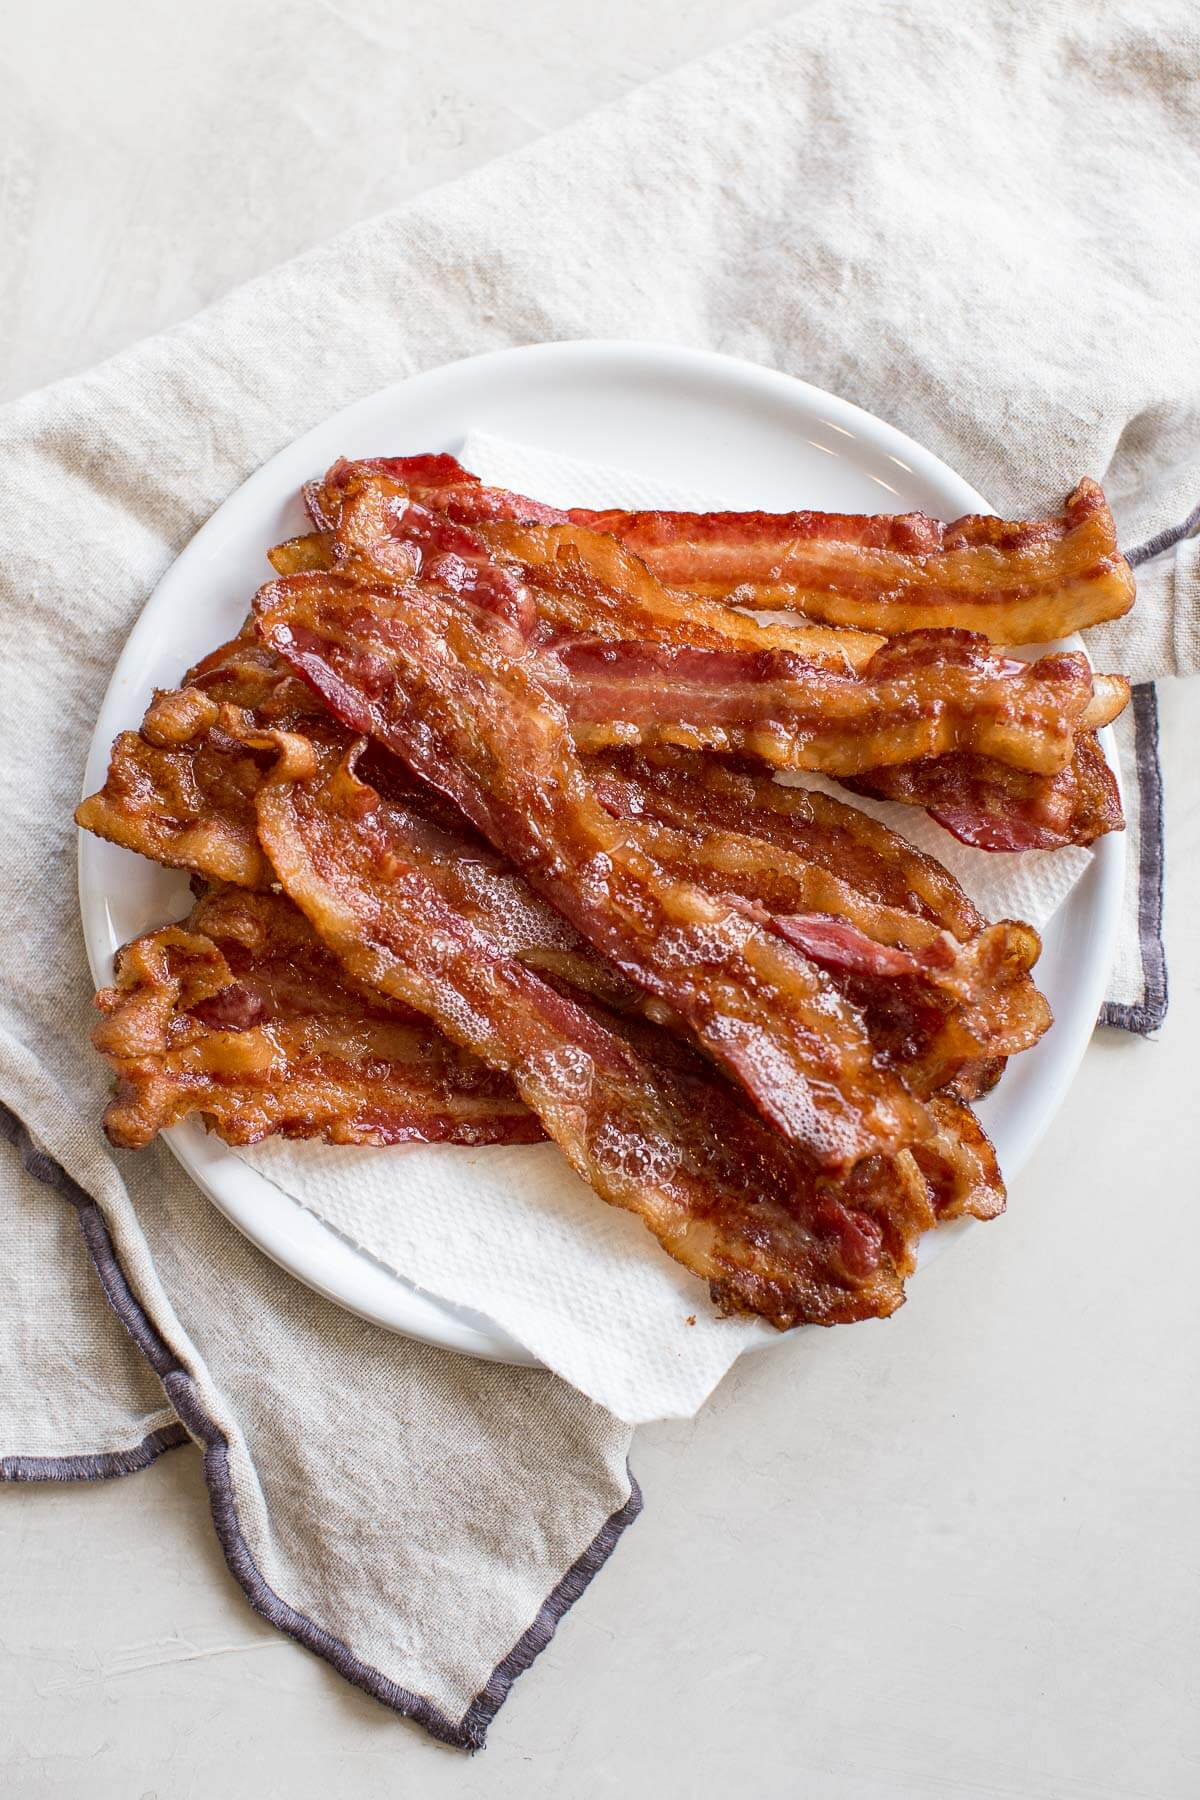 plate of bacon on paper towels after cooking bacon in the oven